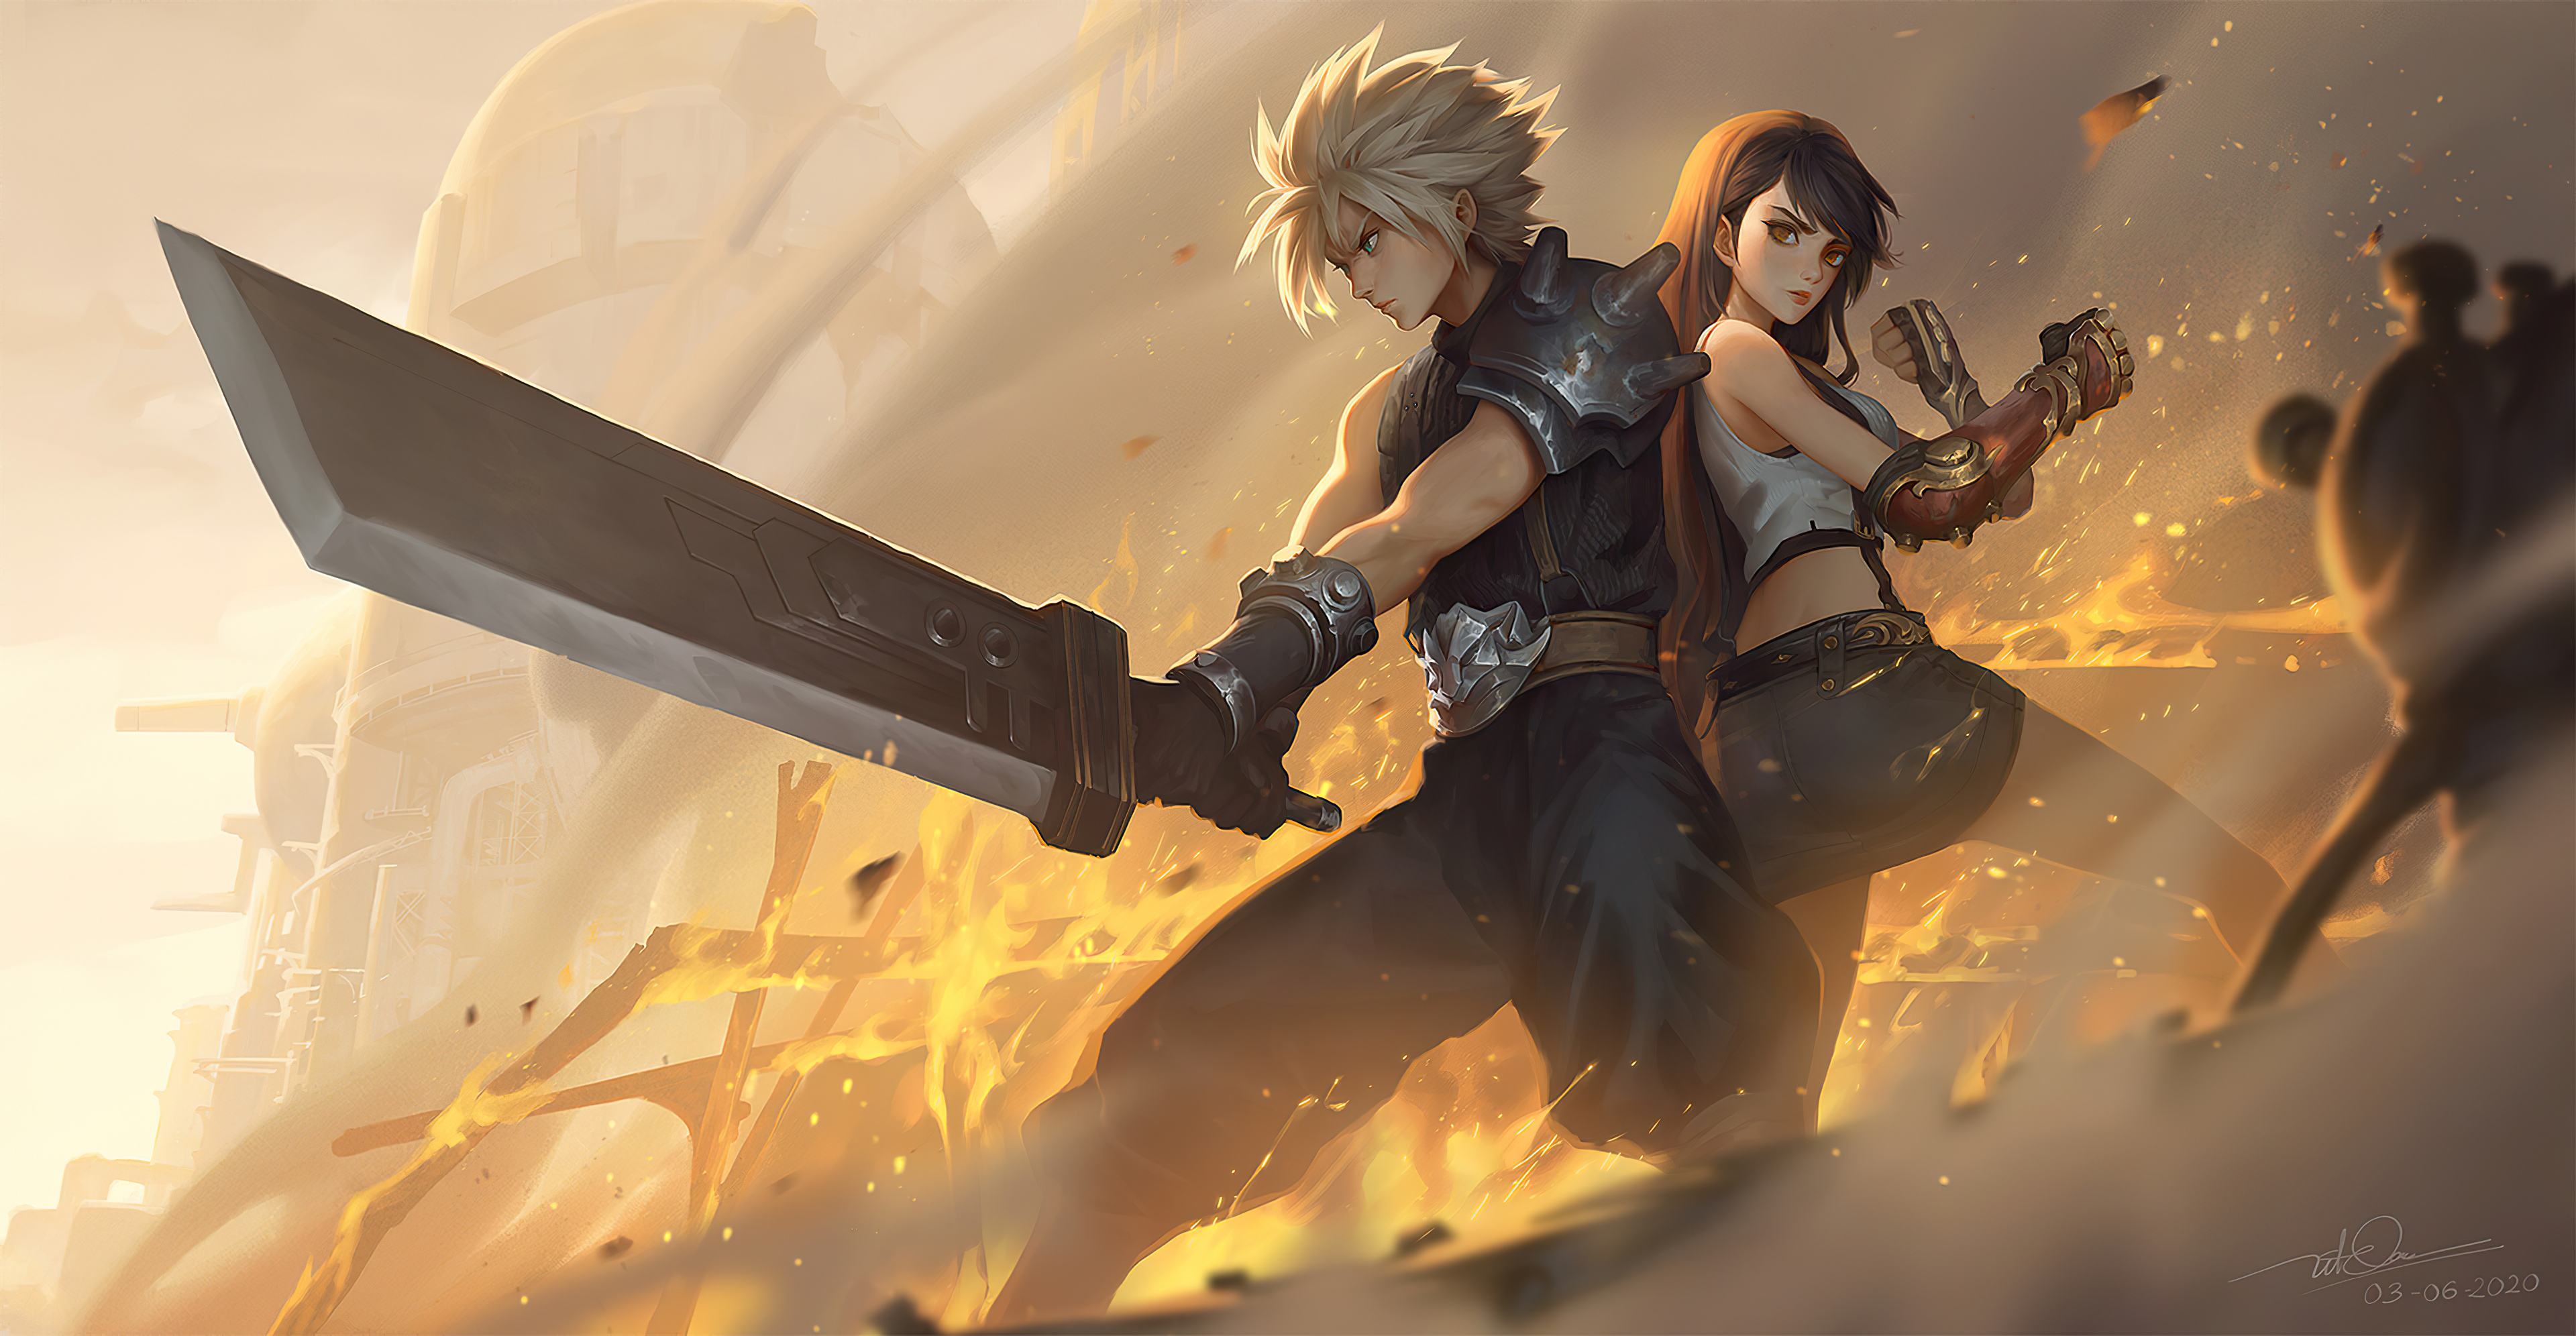 Cloud Strife And Tifa Lockhart 4k Final Fantasy Wallpaper Hd Games 4k Wallpapers Images Photos And Background